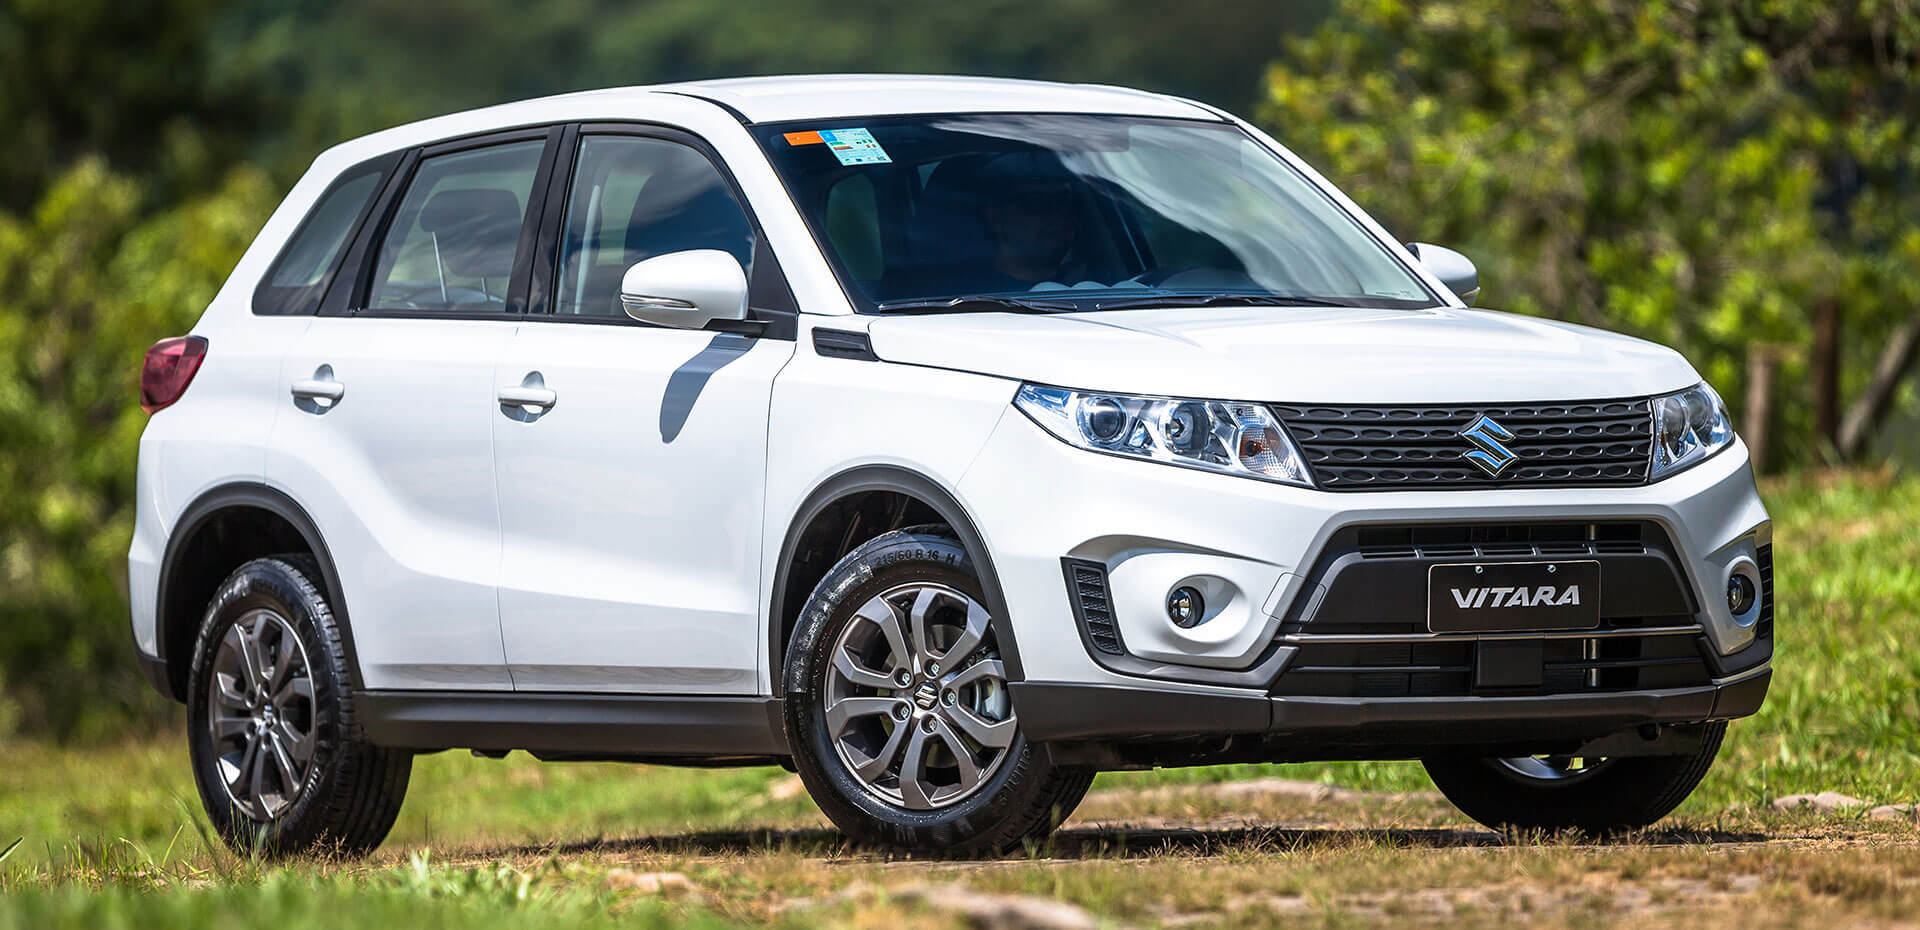 Suzuki Vitara 4ALL 6